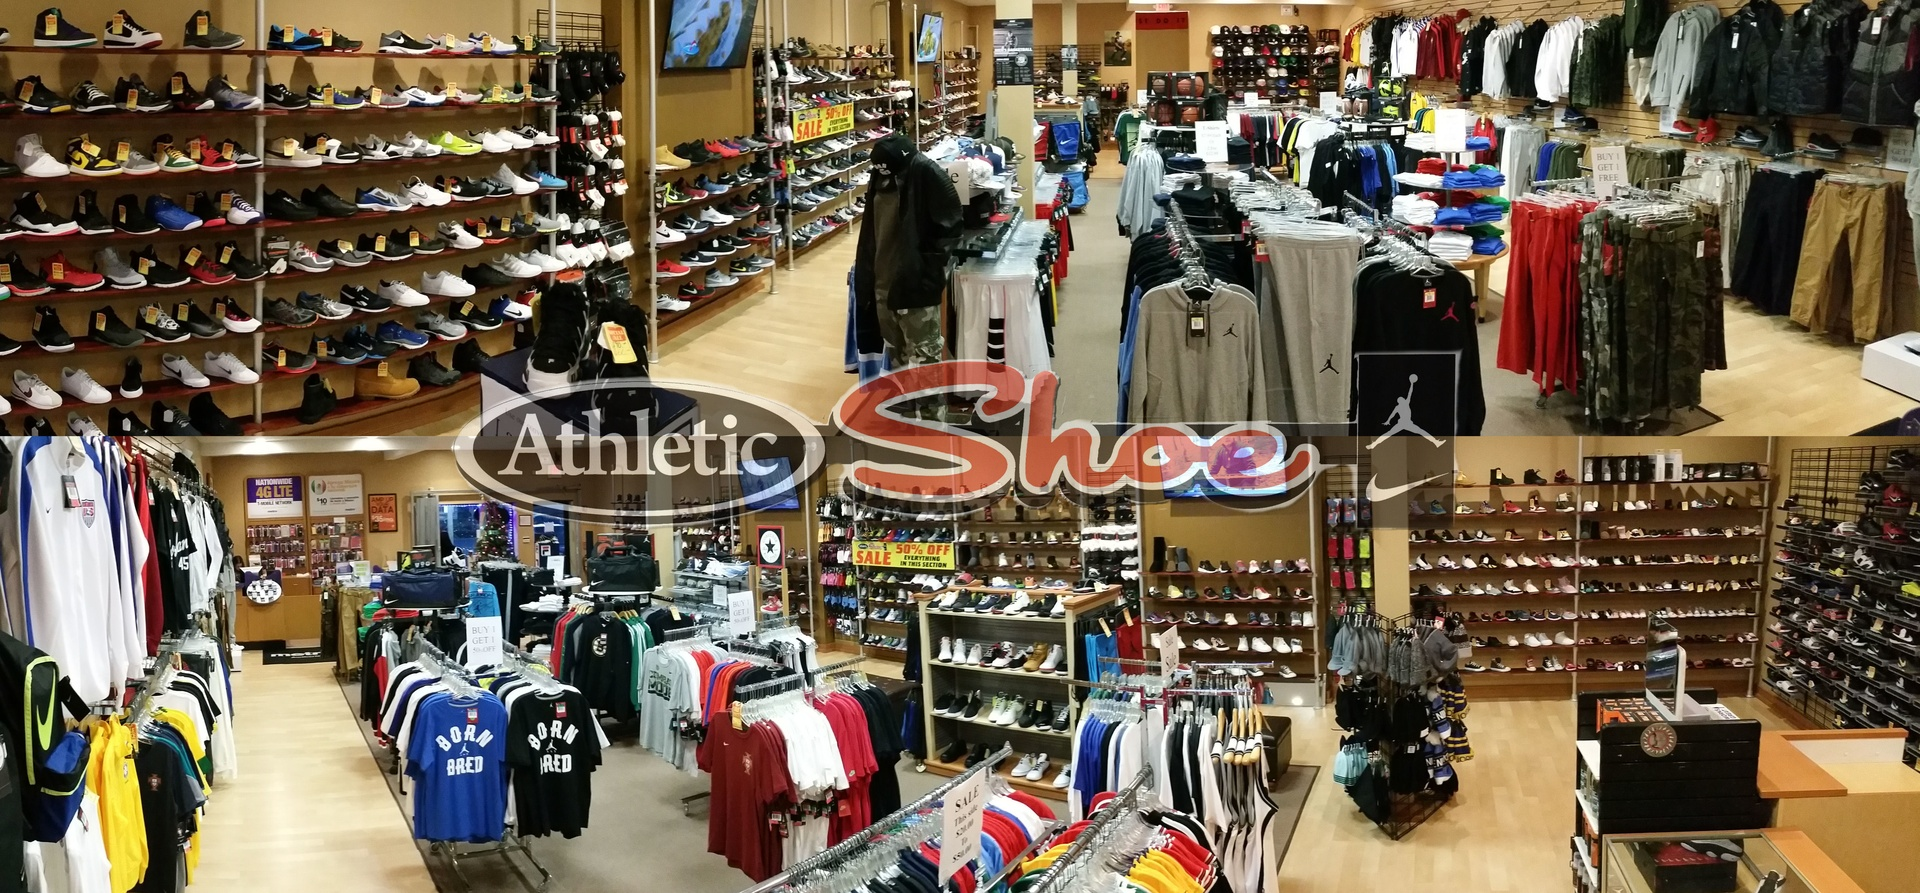 Athletes Foot Shoe Store Online Shopping